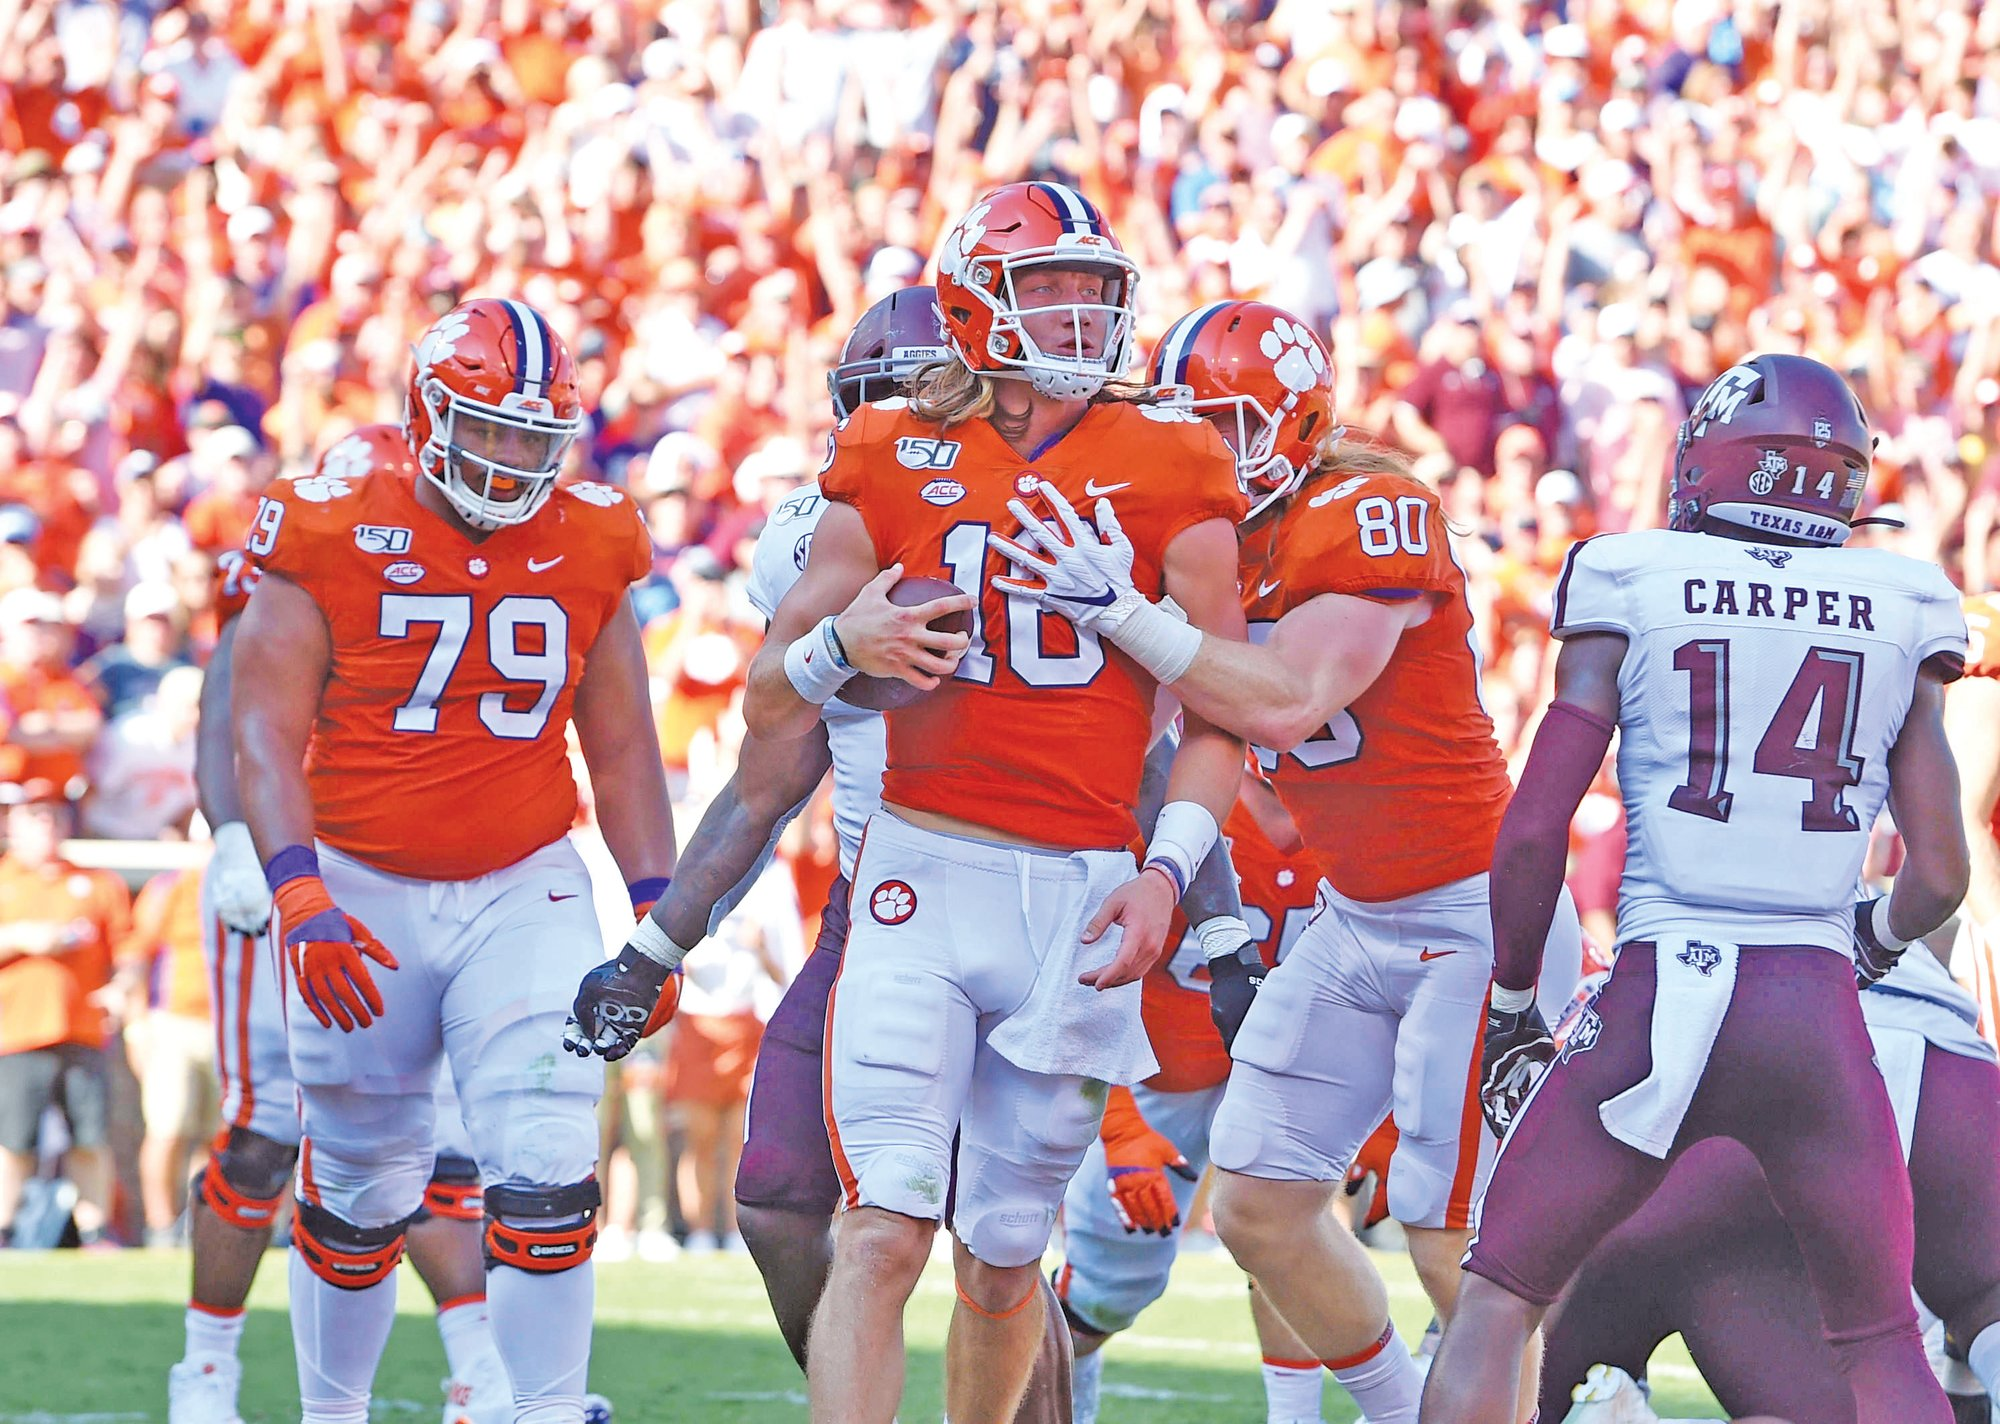 Clemson quarterback Trevor Lawrence (16) and the Tigers will be on the road against Syracuse on Saturday. Clemson is off to a 2-0 start after beating Texas A&M last week.